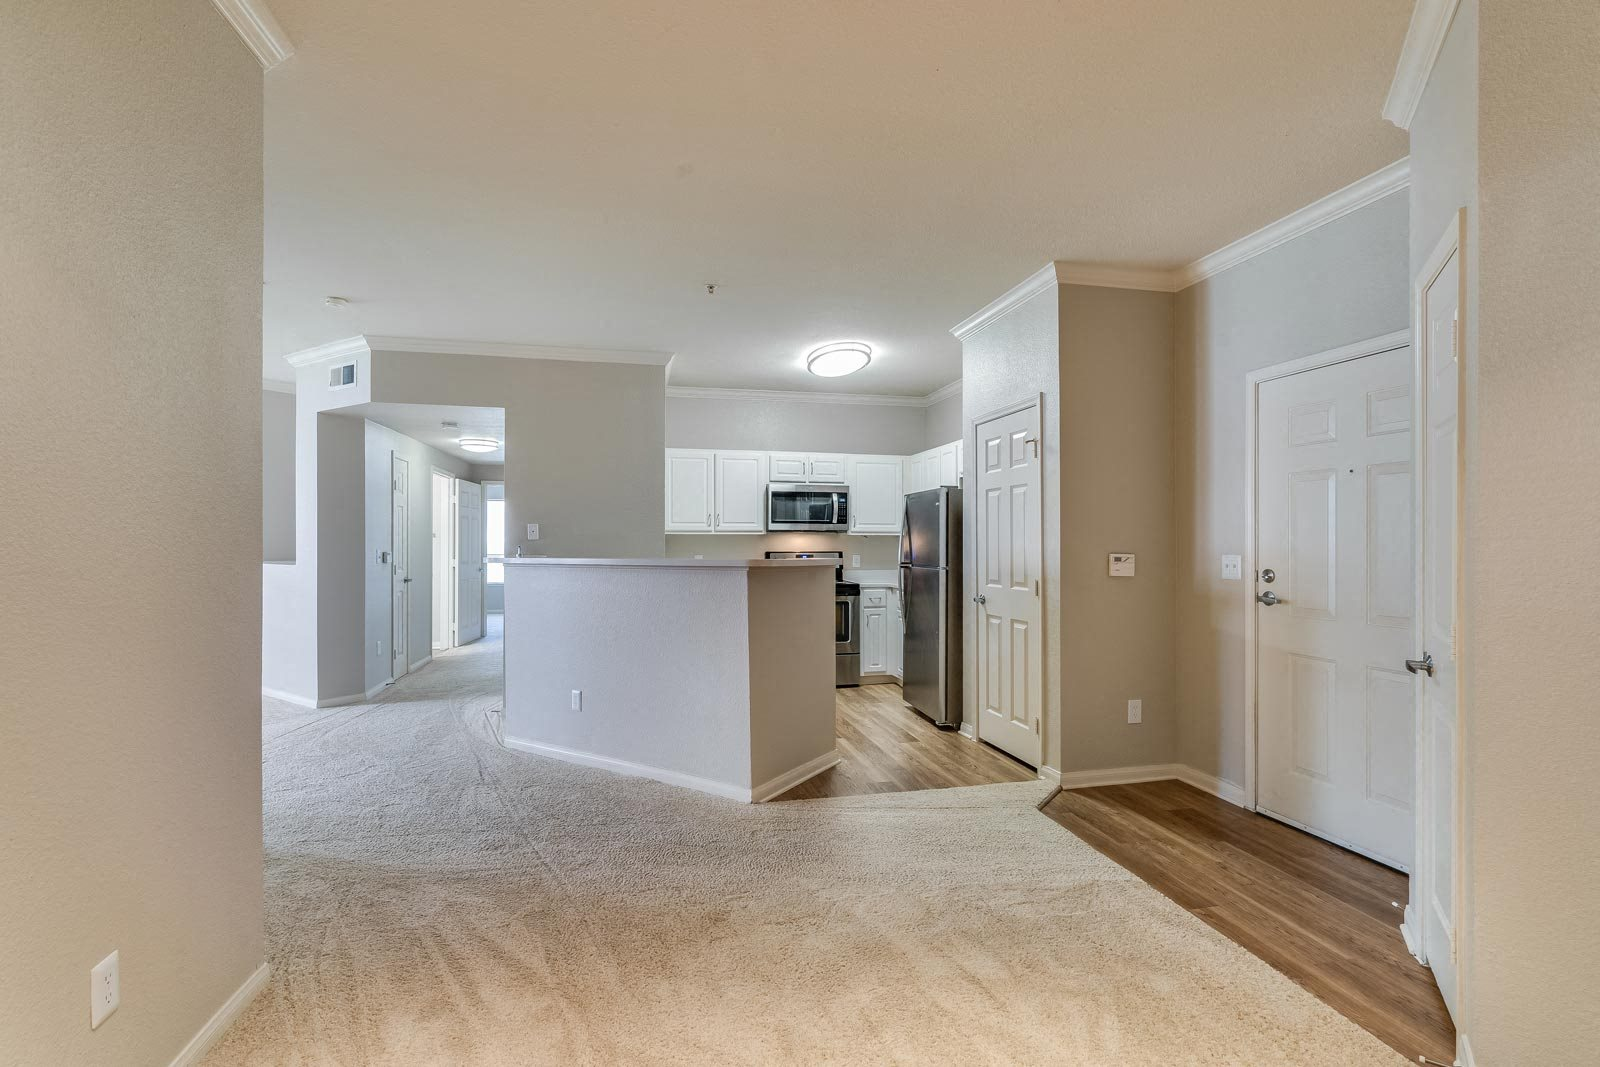 Hardwood Flooring in Kitchen and Entryway at Windsor at Redwood Creek, 600 Rohnert Park Expressway West, Rohnert Park